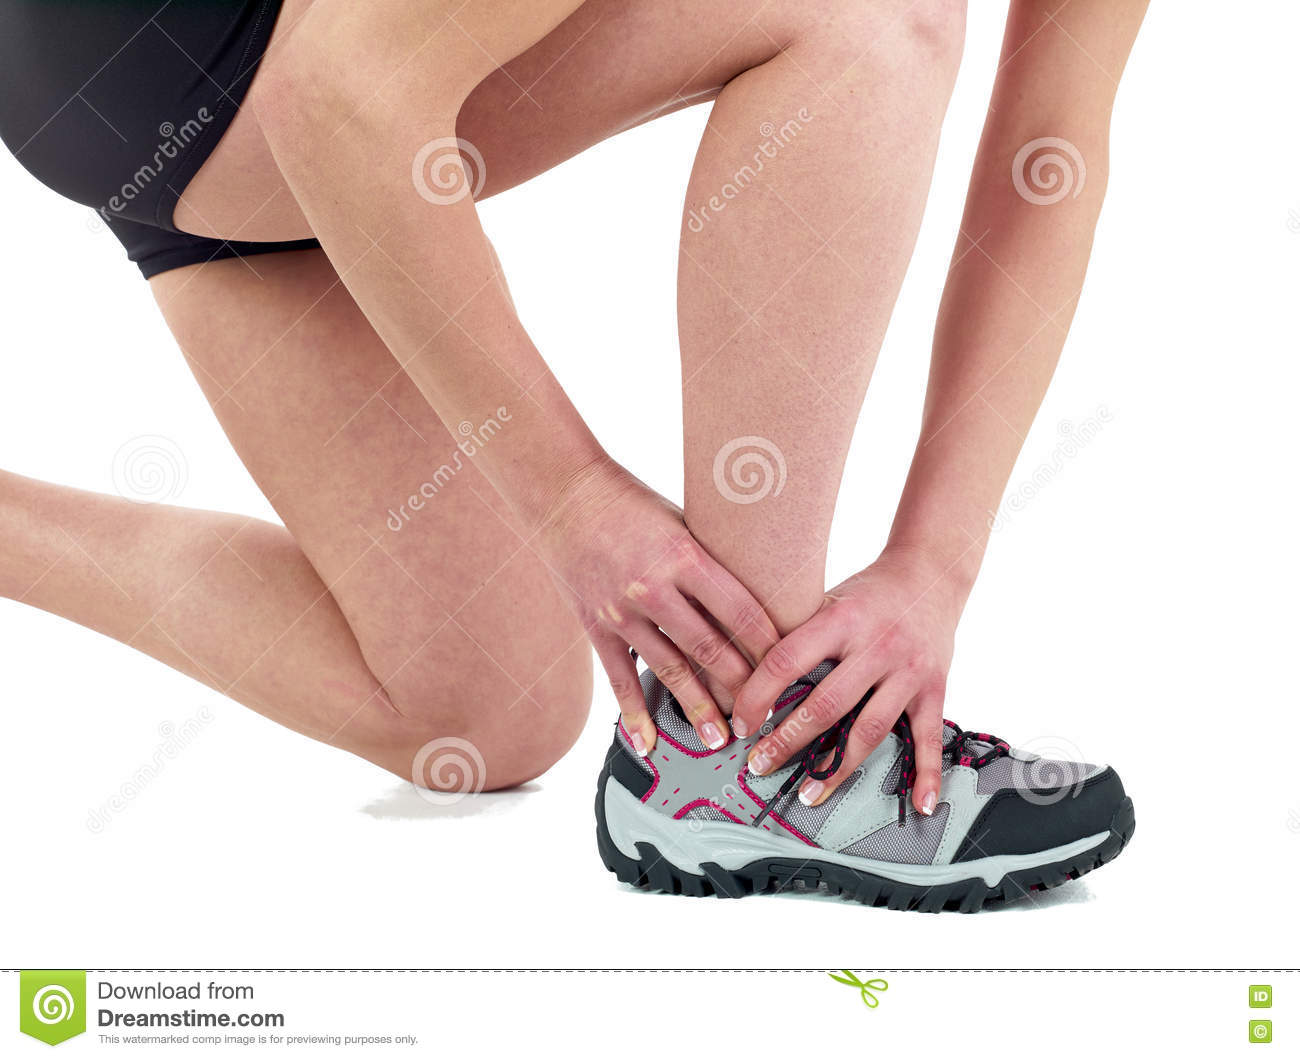 Human Ankle Pain Stock Photo Image Of Inflammation Manipulation